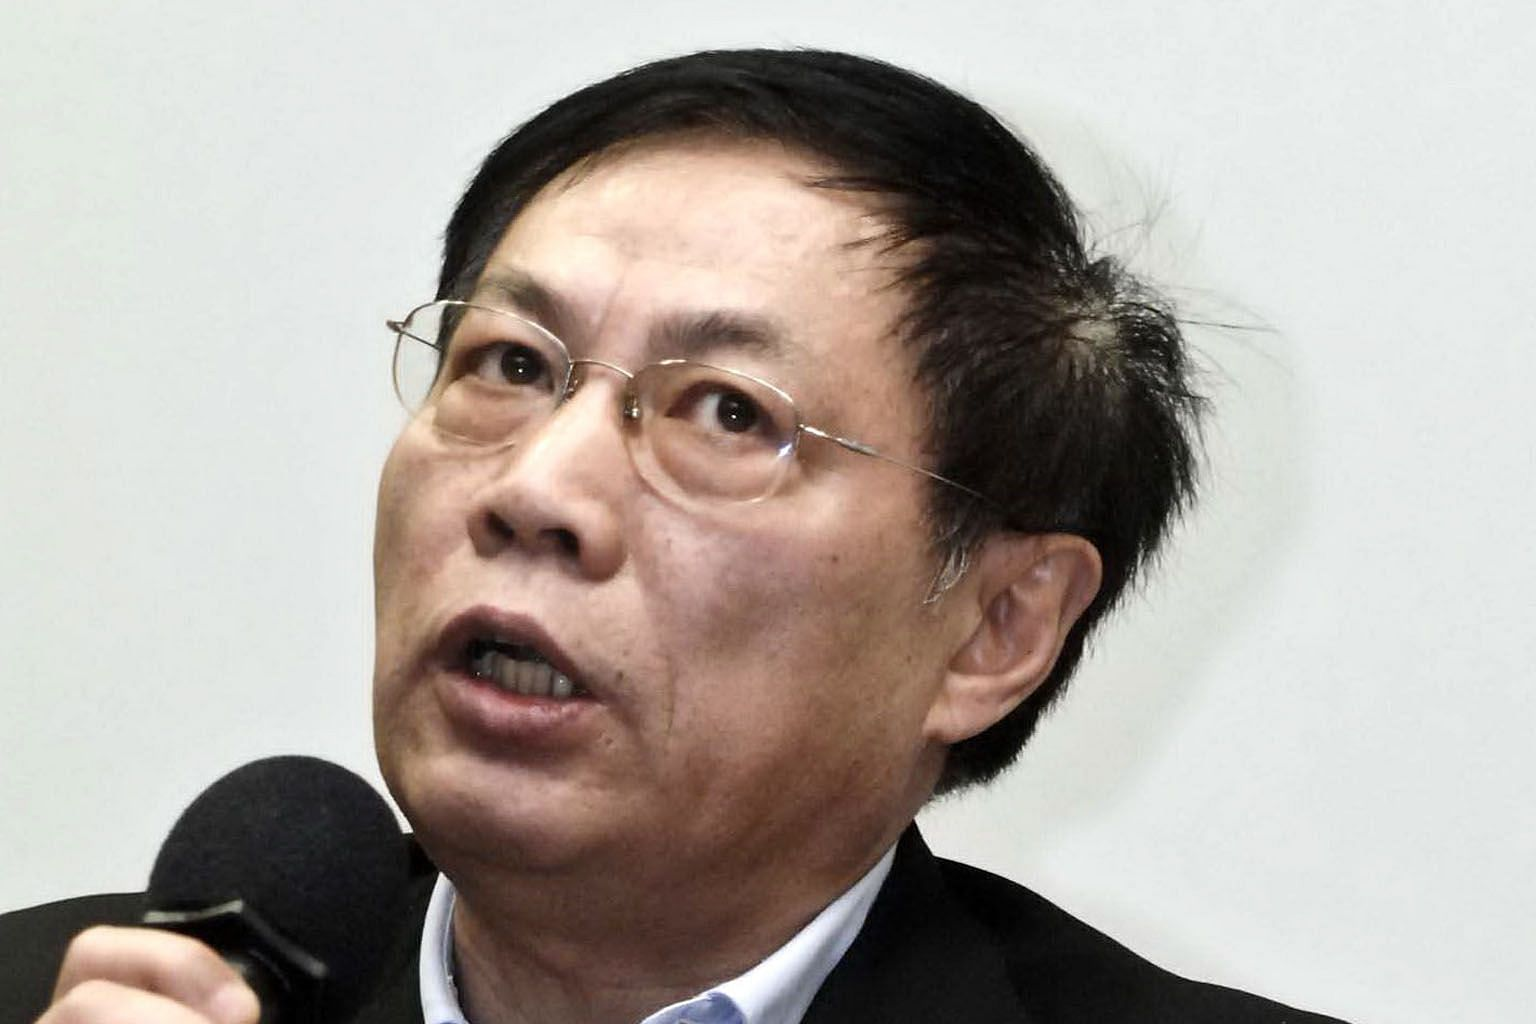 Tycoon Ren Zhiqiang was linked to an article criticising President Xi Jinping over the virus outbreak.